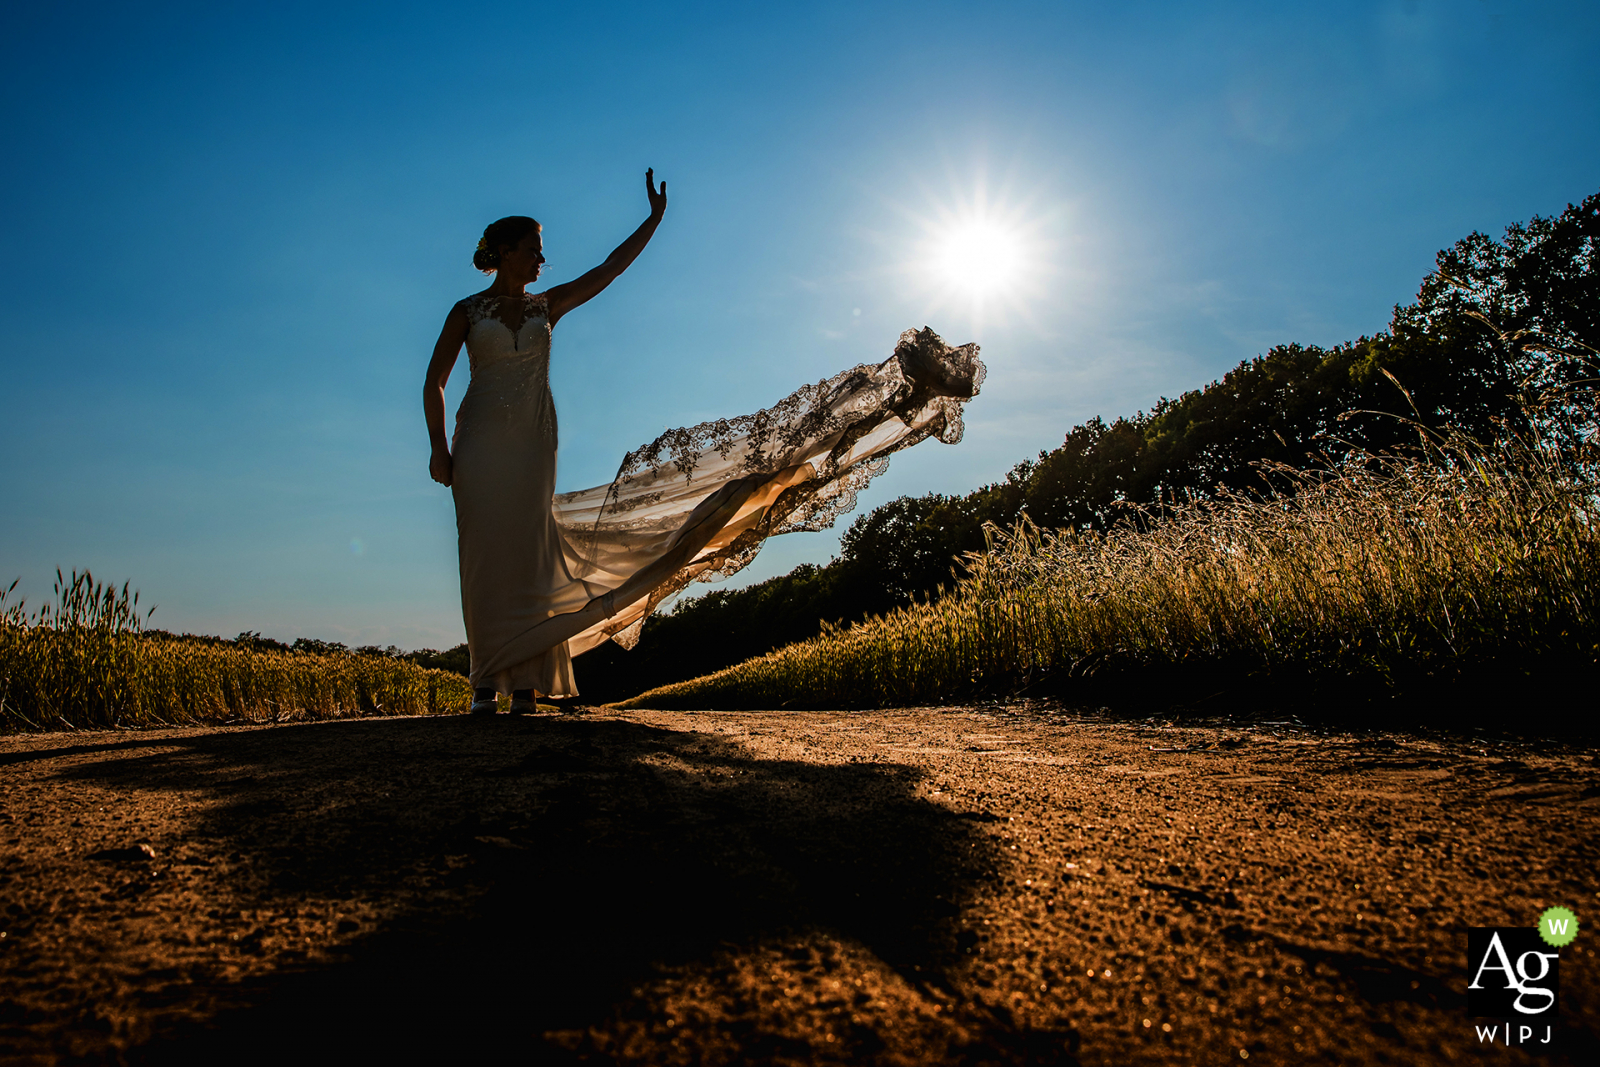 Hiske Boon is an artistic wedding photographer for Noord Brabant